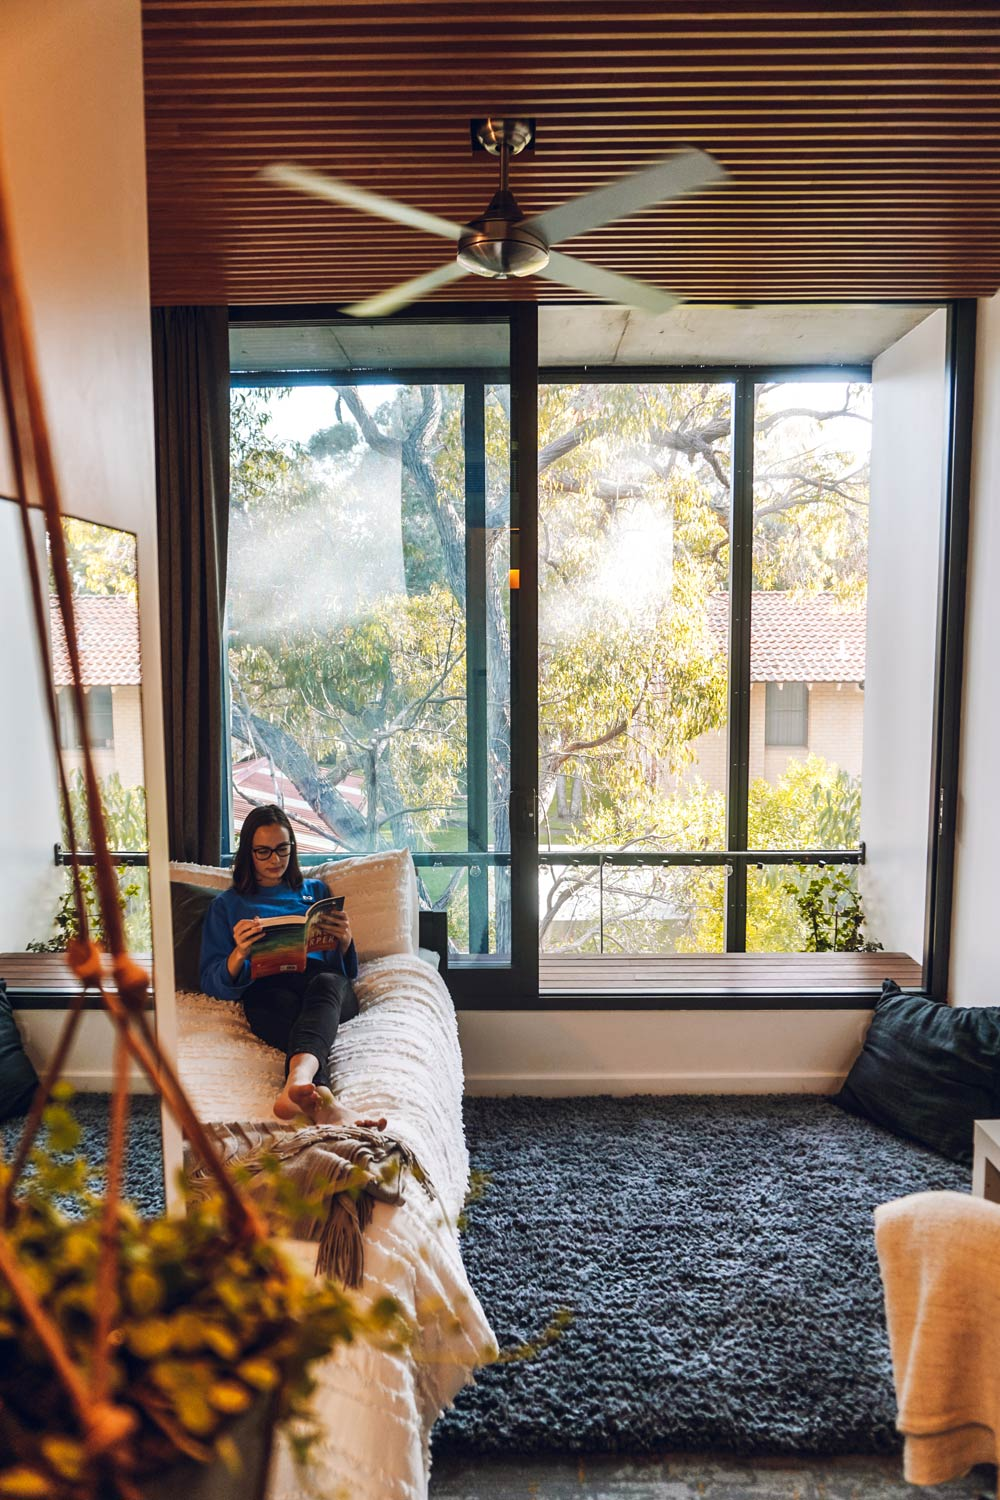 As a later year university student, you'll get the opportunity to live in a Studio Room in our new buildings. Our architecturally-designed Studio Rooms offer you a personal study and rest space with an en suite bathroom and kitchenette. Residents decorate their rooms, such as this photo taken in the Banksia building